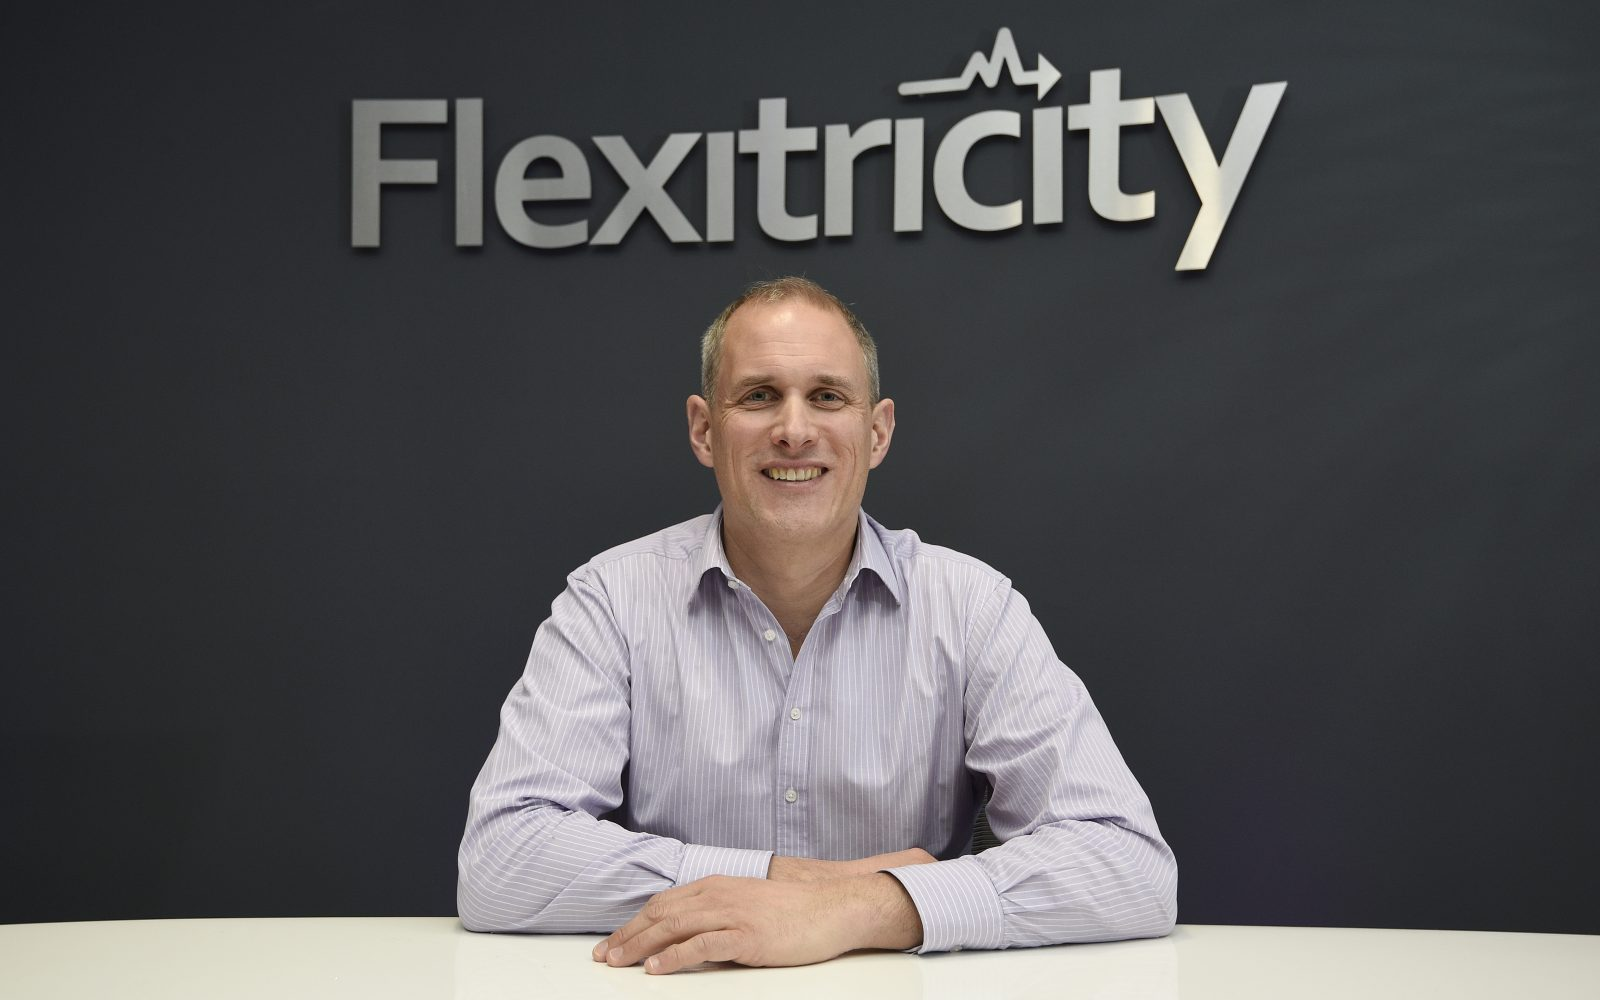 Flexitricity owner Alastair Martin. Image: Flexitricity.